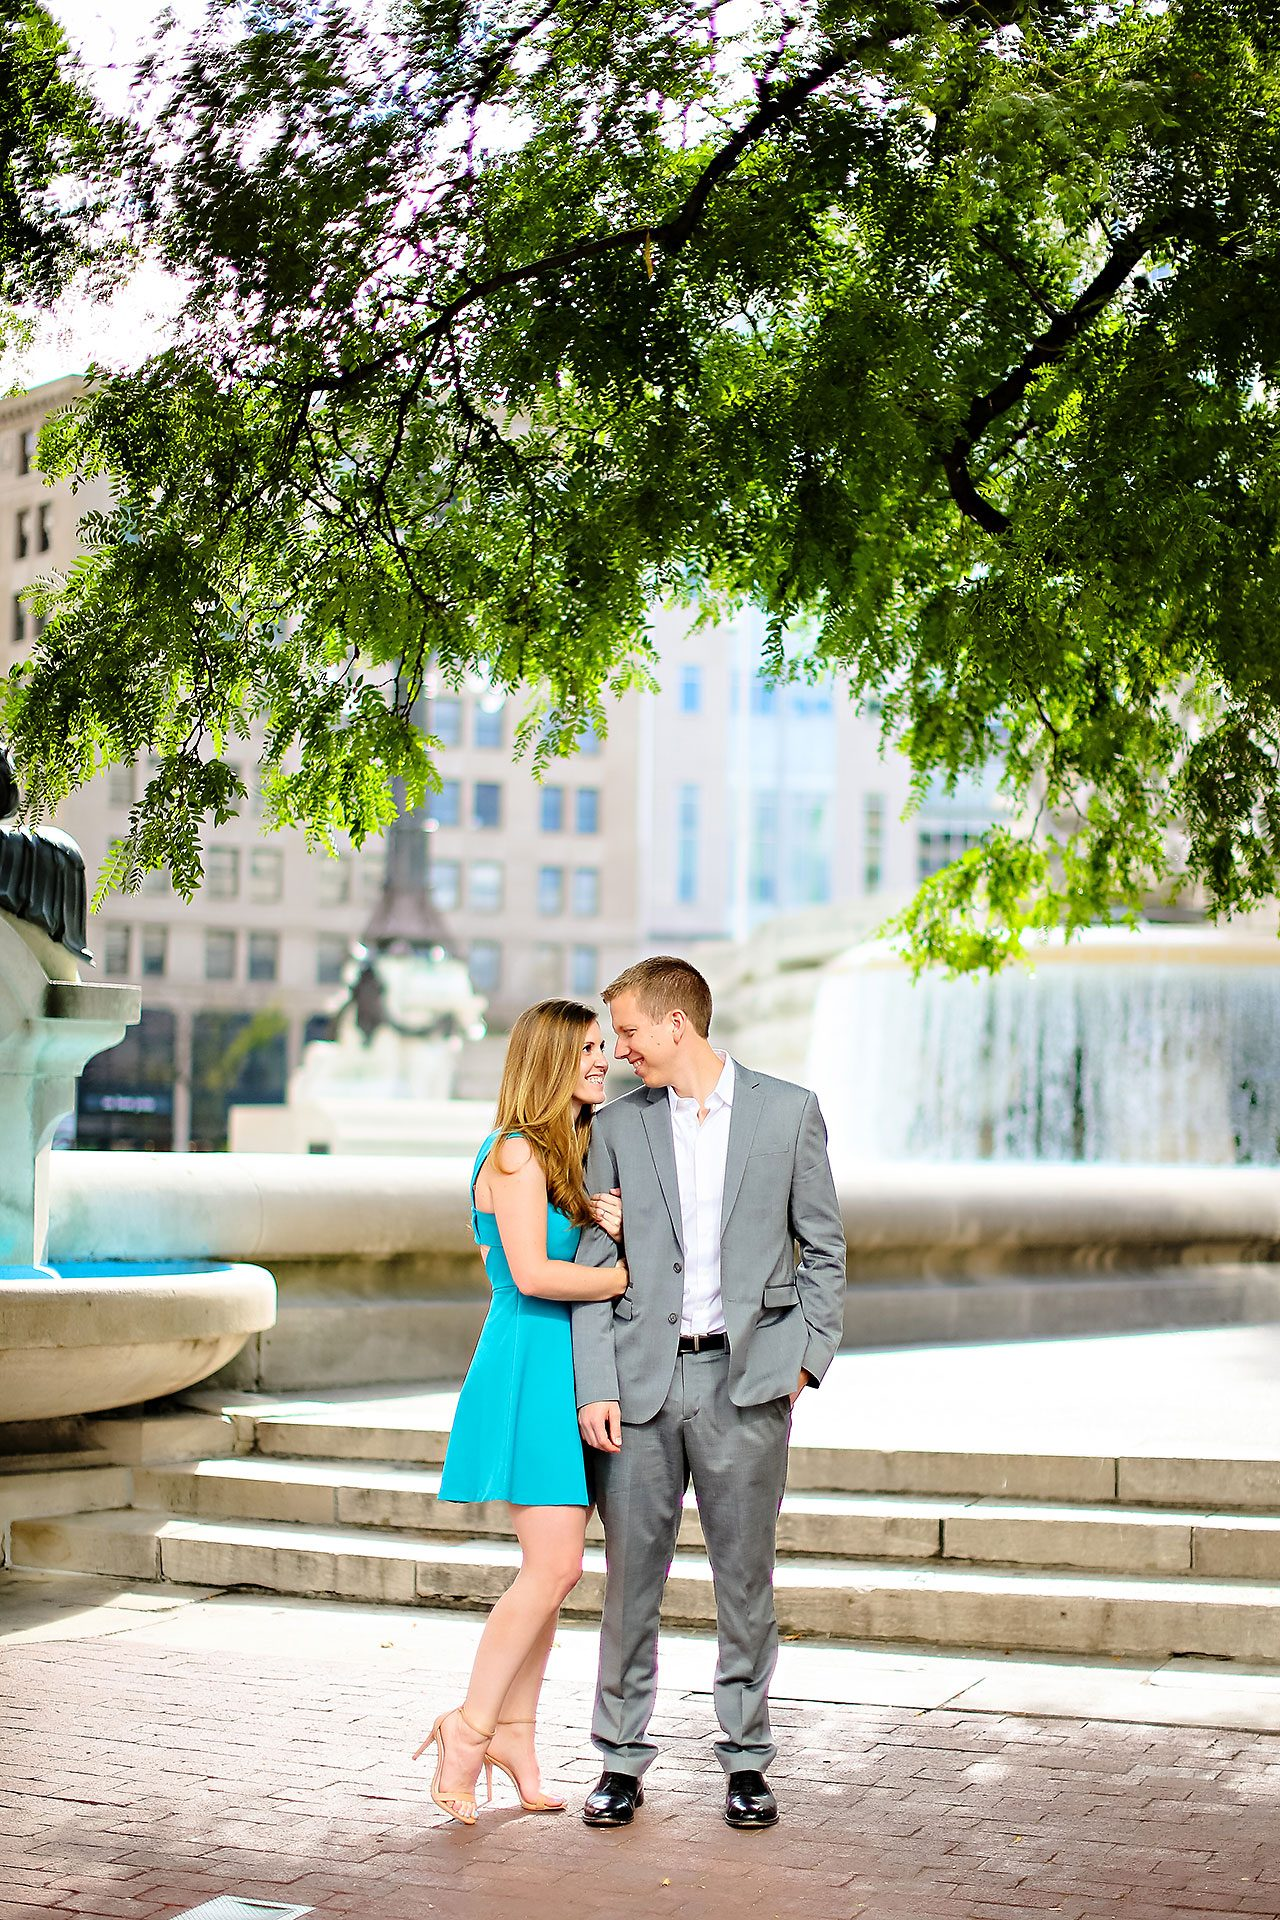 Chelsea Jeff Downtown Indy Engagement Session 108